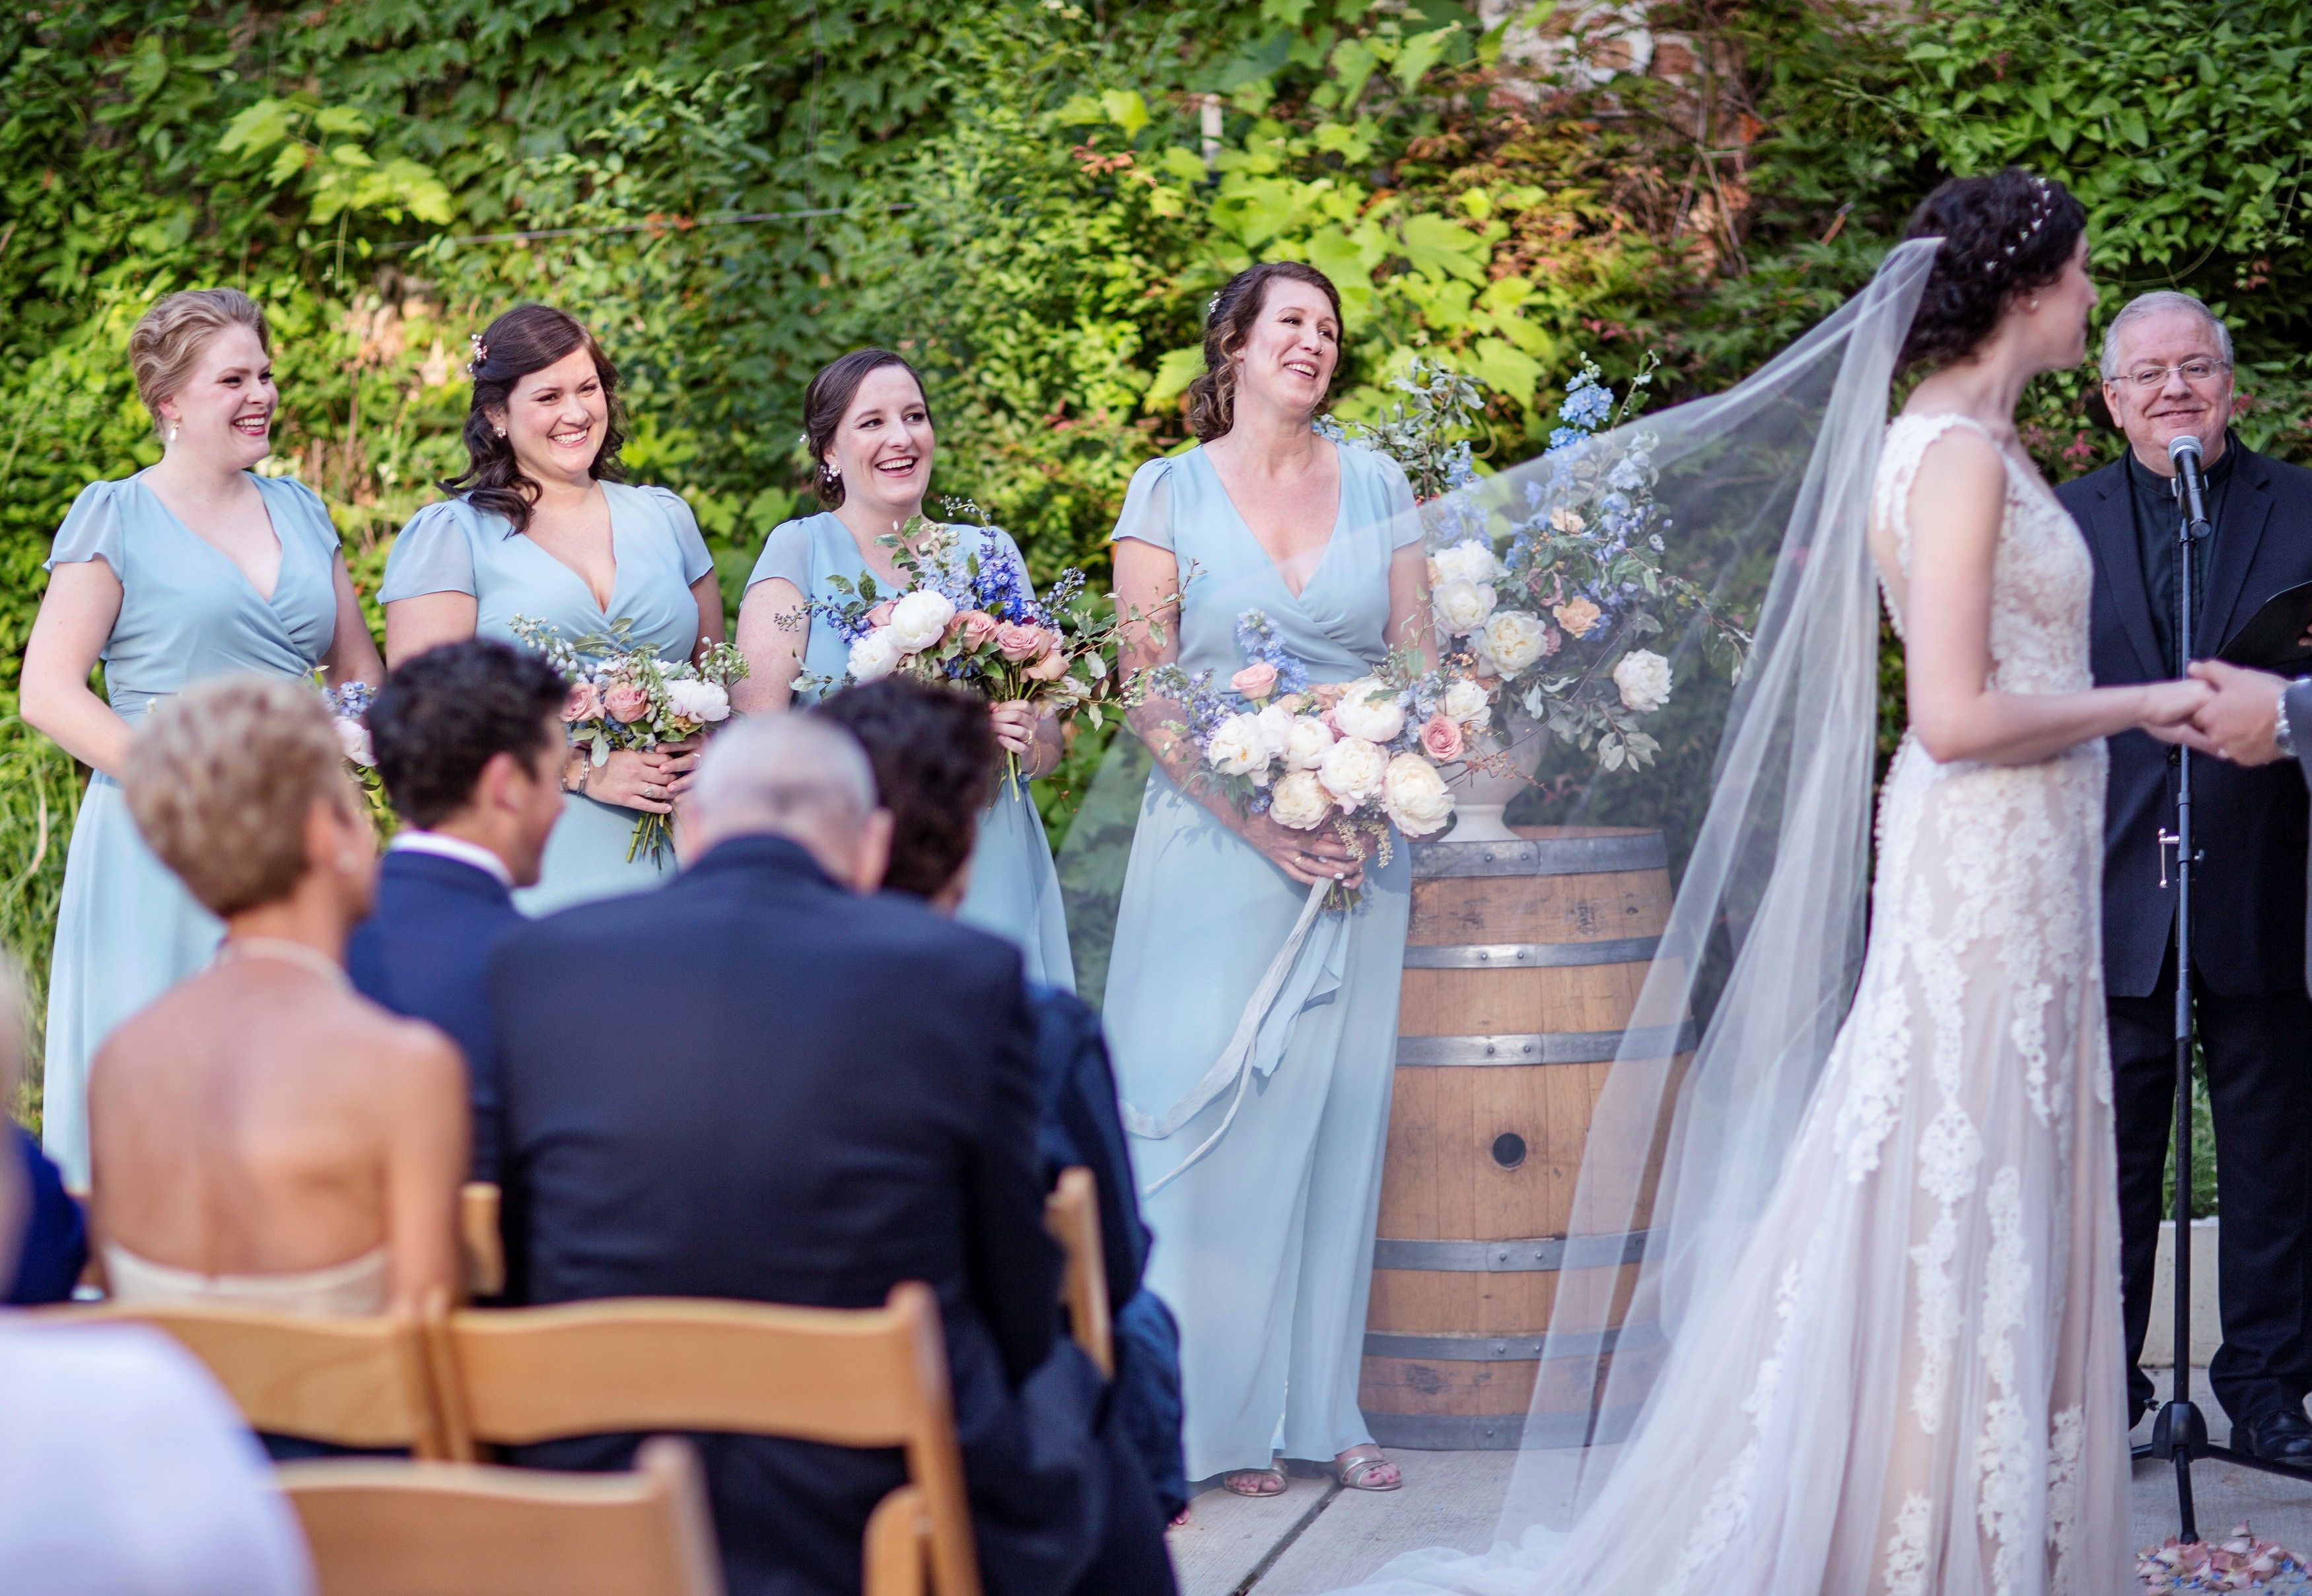 The 1st Chicago Wedding Officiant In The Knot Hall Of Fame Better Reviews At Weddingwire Than Any Other Chicago Chicago Wedding Wedding Officiant Wedding Wire